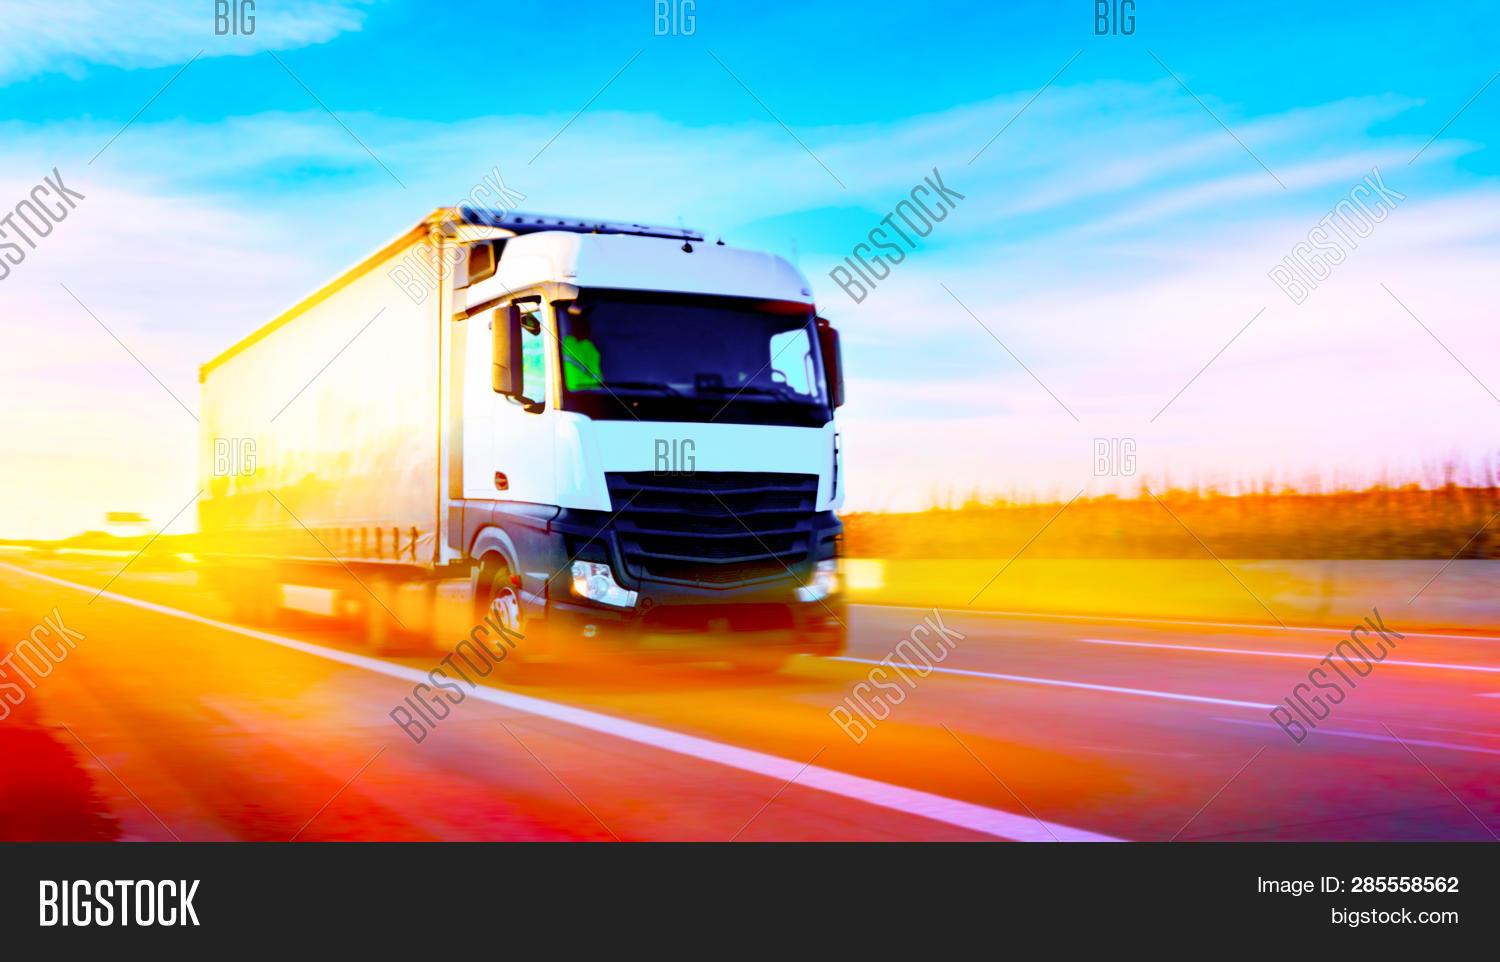 Abstract,Auto,Automobile,Big,Business,Cargo,Color,Delivering,Delivery,Design,Drive,Driver,Driving,Elements,Europe,Fast,Freeway,Freight,Highway,Industry,Journey,Life,Logistics,Merchandise,Mode,Motion,Moving,Nature,Outdoor,Perspective,Race,Red,Road,Route,Scene,Shipping,Speed,Traffic,Transport,Transportation,Travel,Trucking,Way,trailer,truck